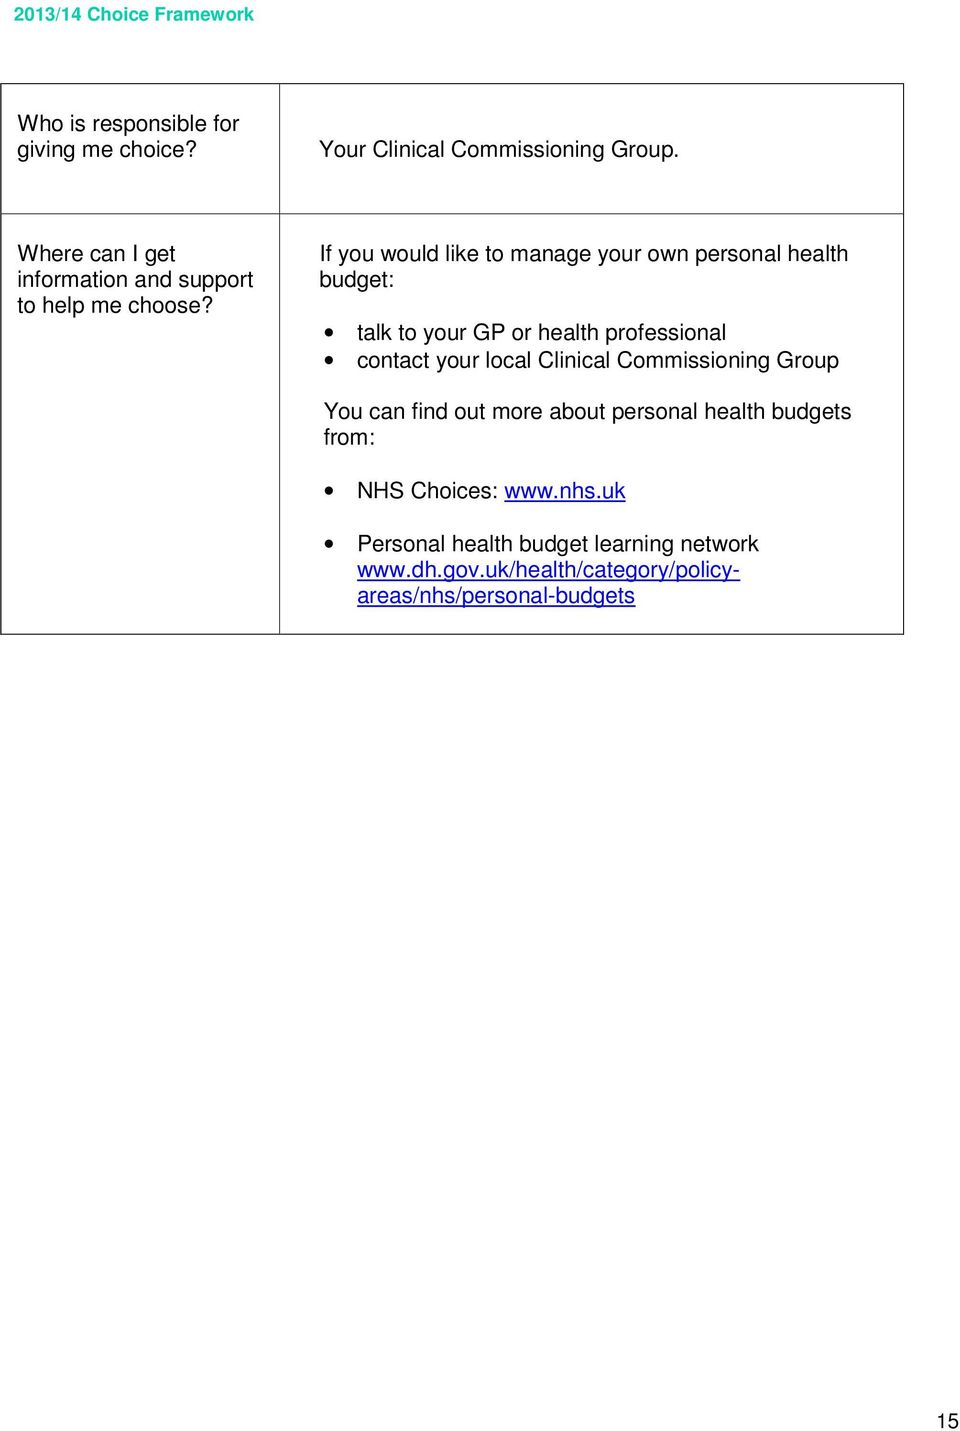 If you would like to manage your own personal health budget: talk to your GP or health professional contact your local